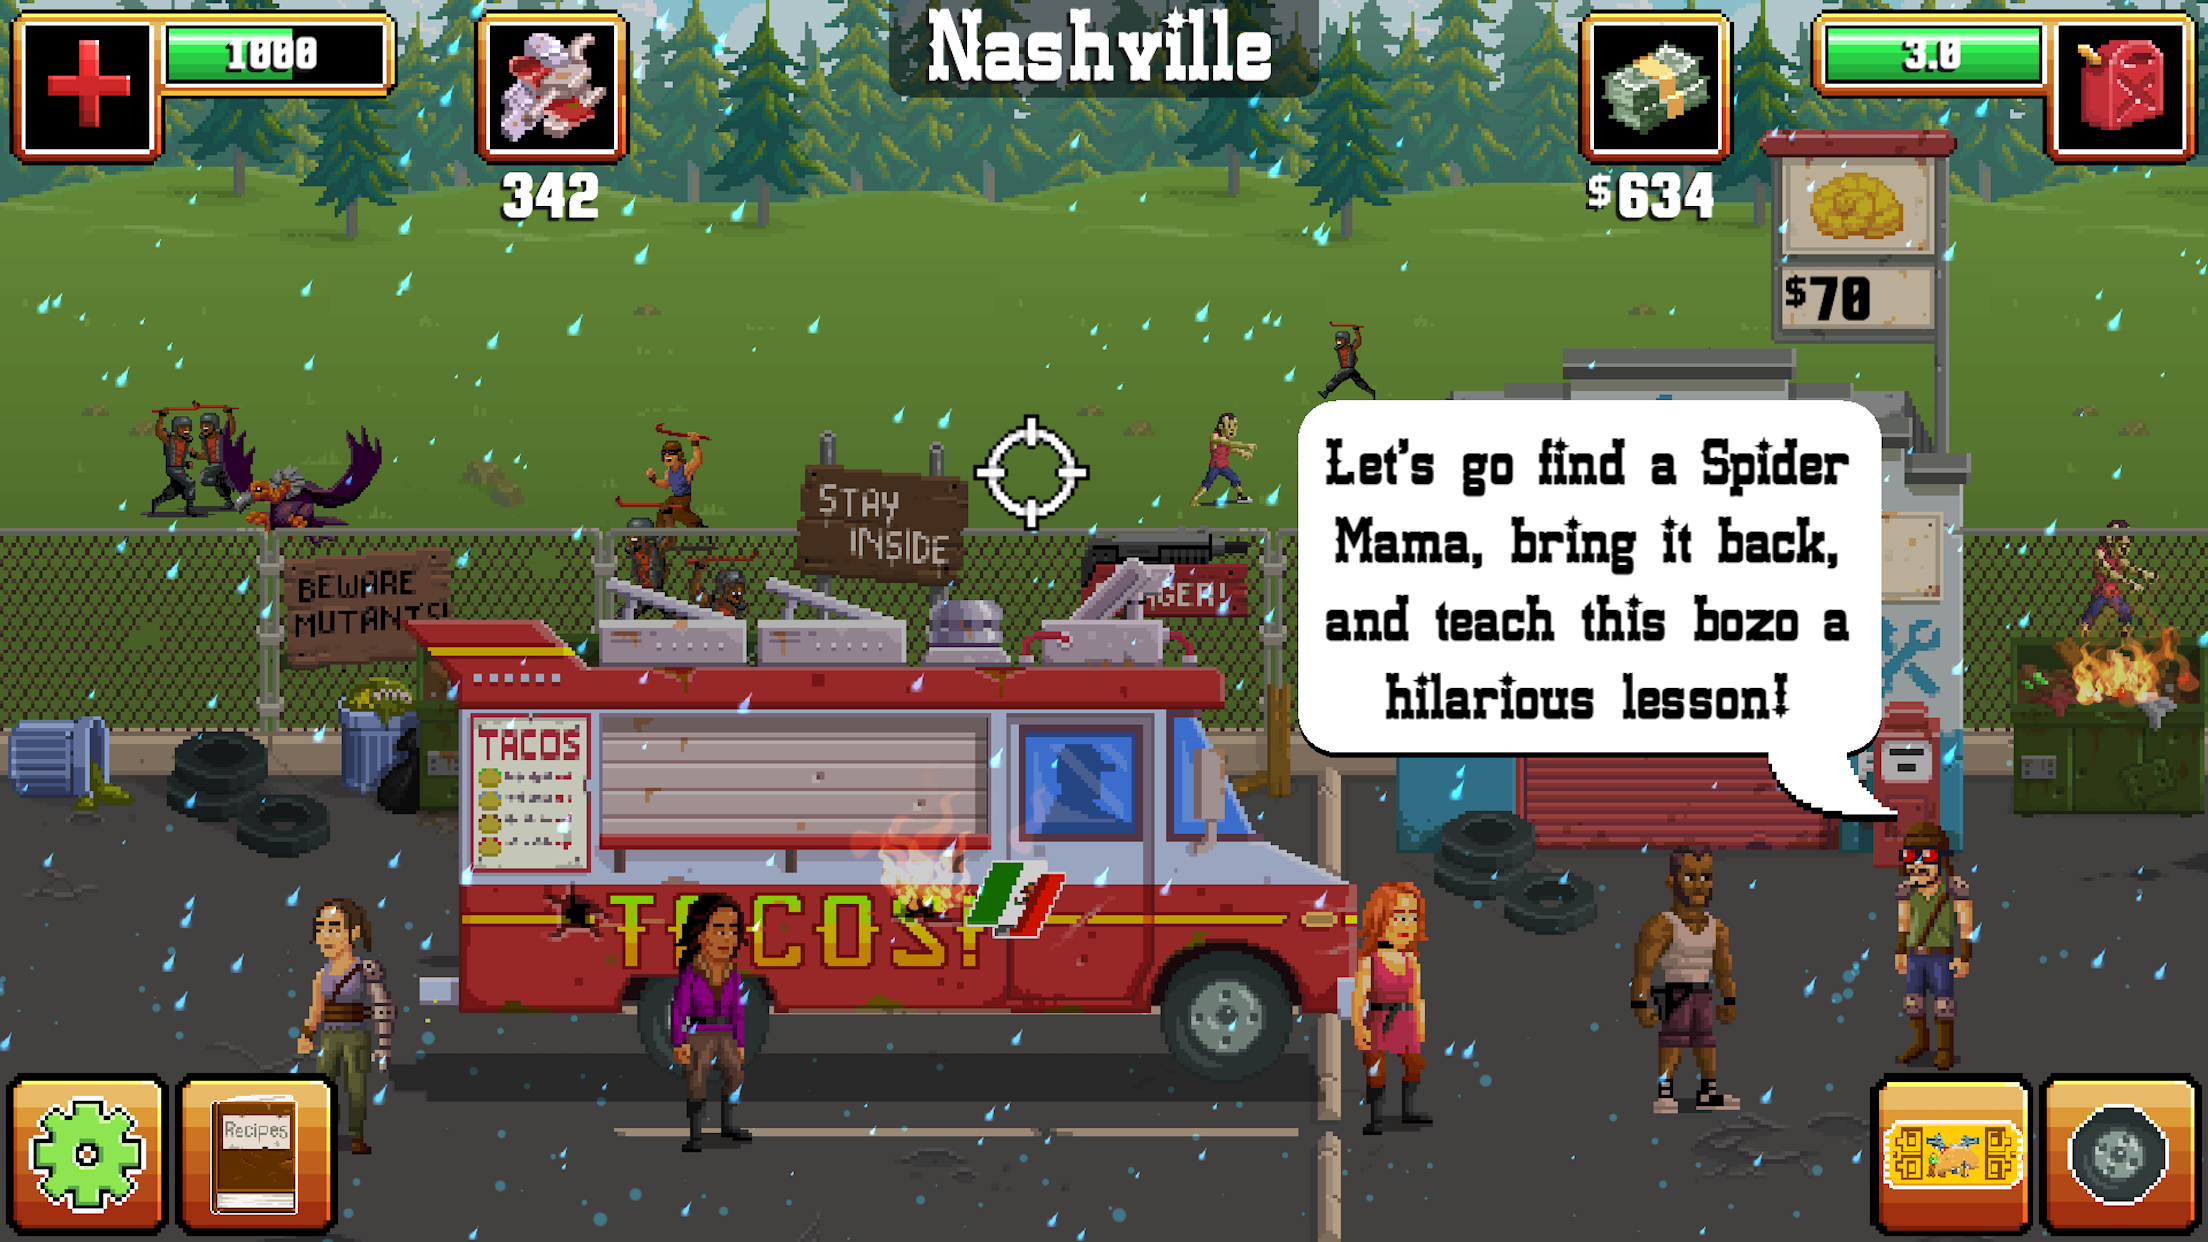 2208x1242-town-angry.png